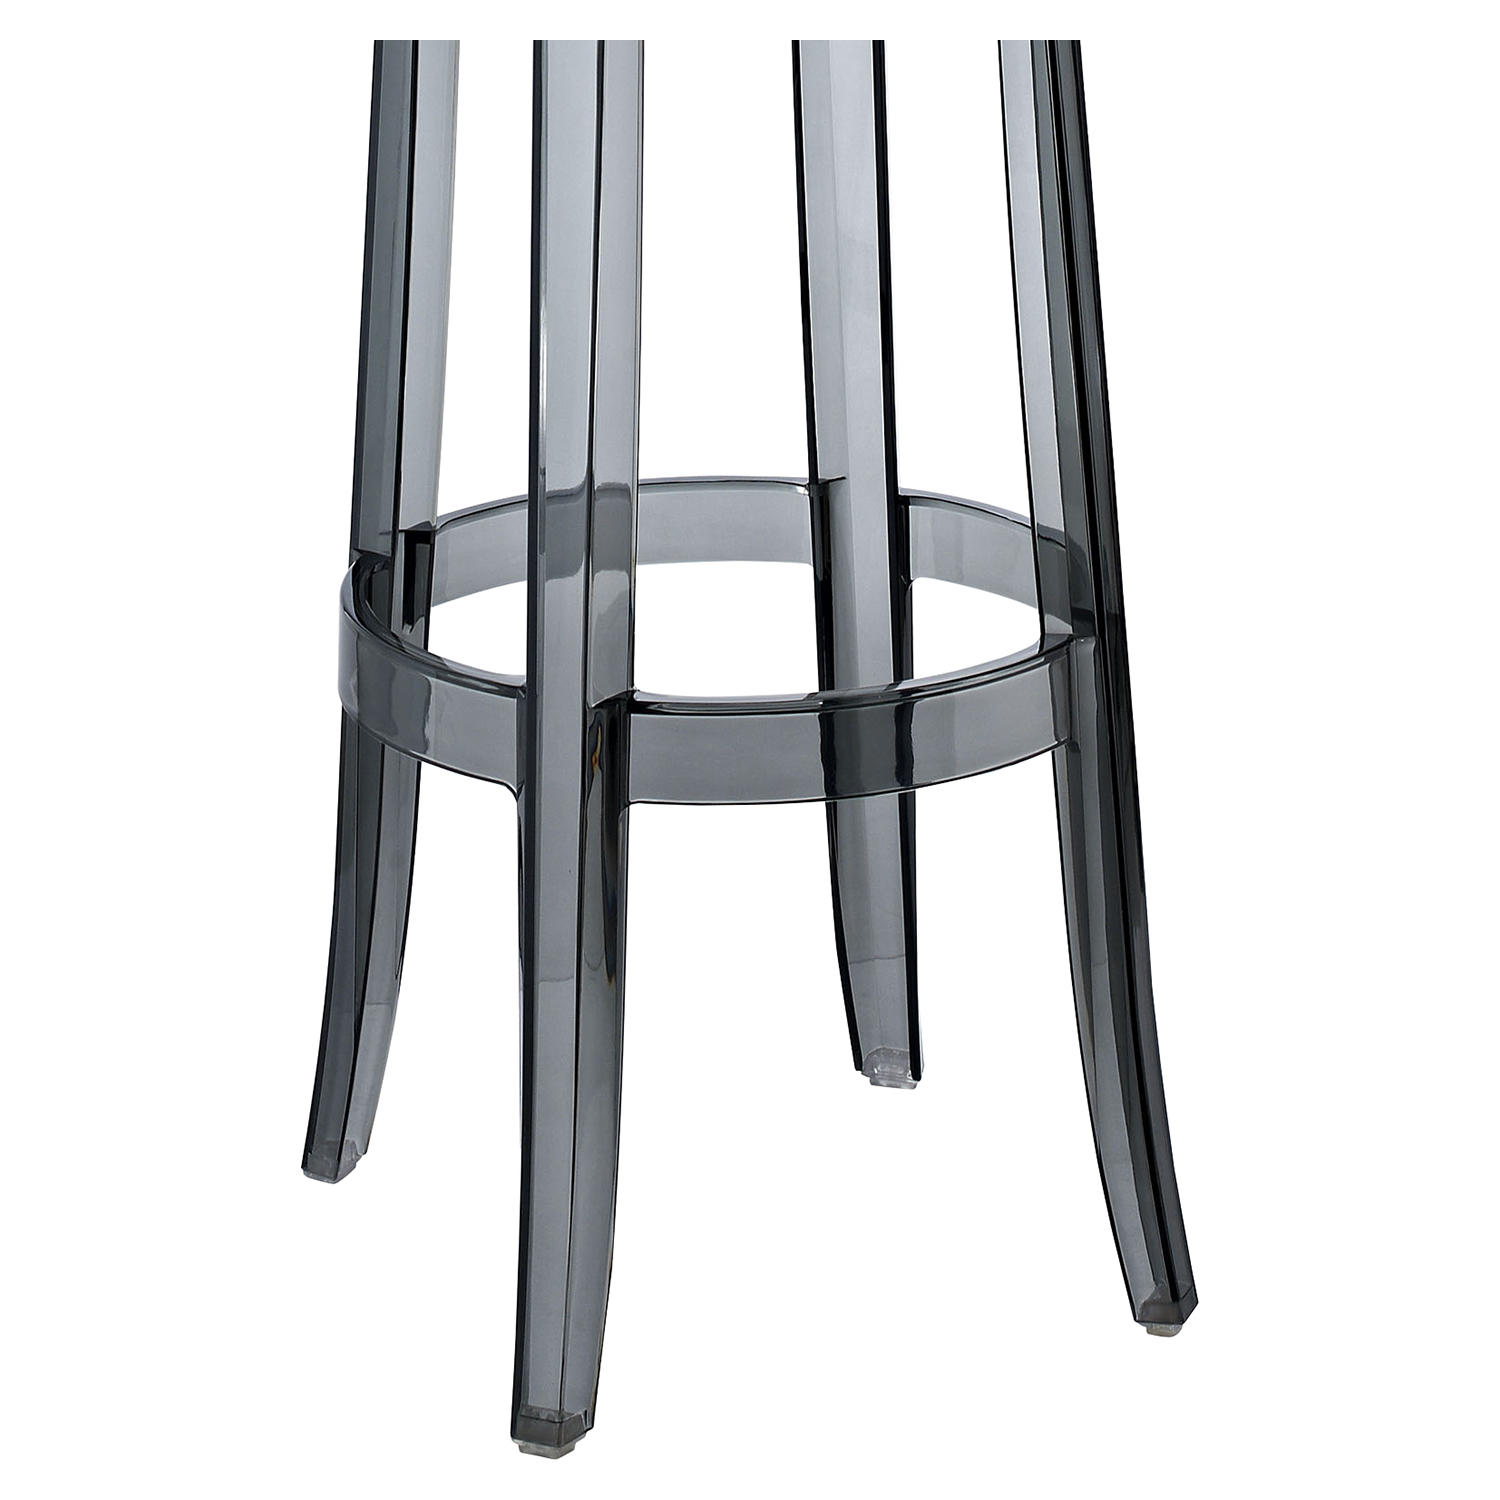 Casper Bar Stool - Smoke (Set of 2) - EEI-1264-SMK